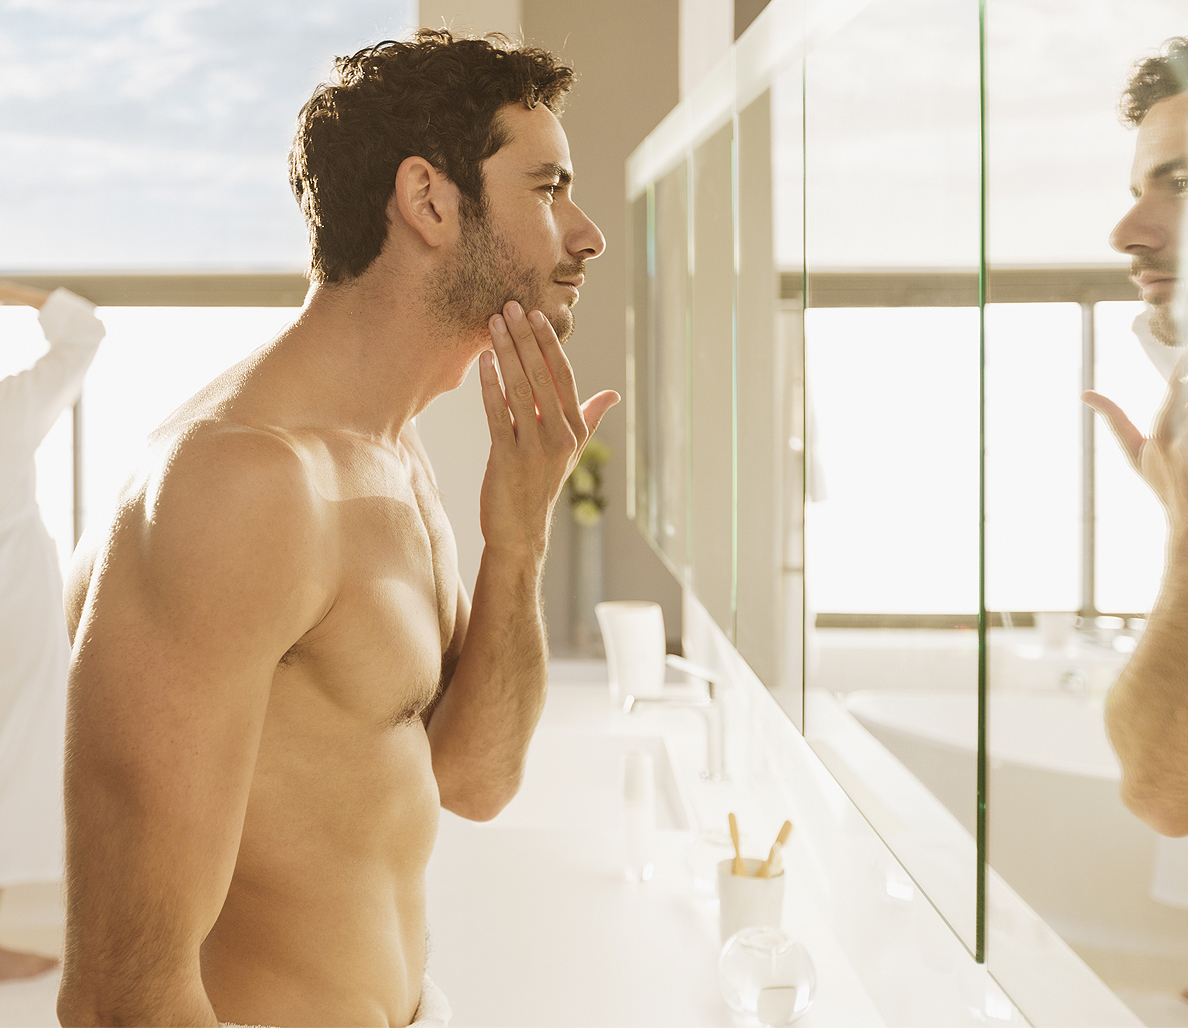 6 Solid Colognes That Will Last for Hours and Make You Smell Great